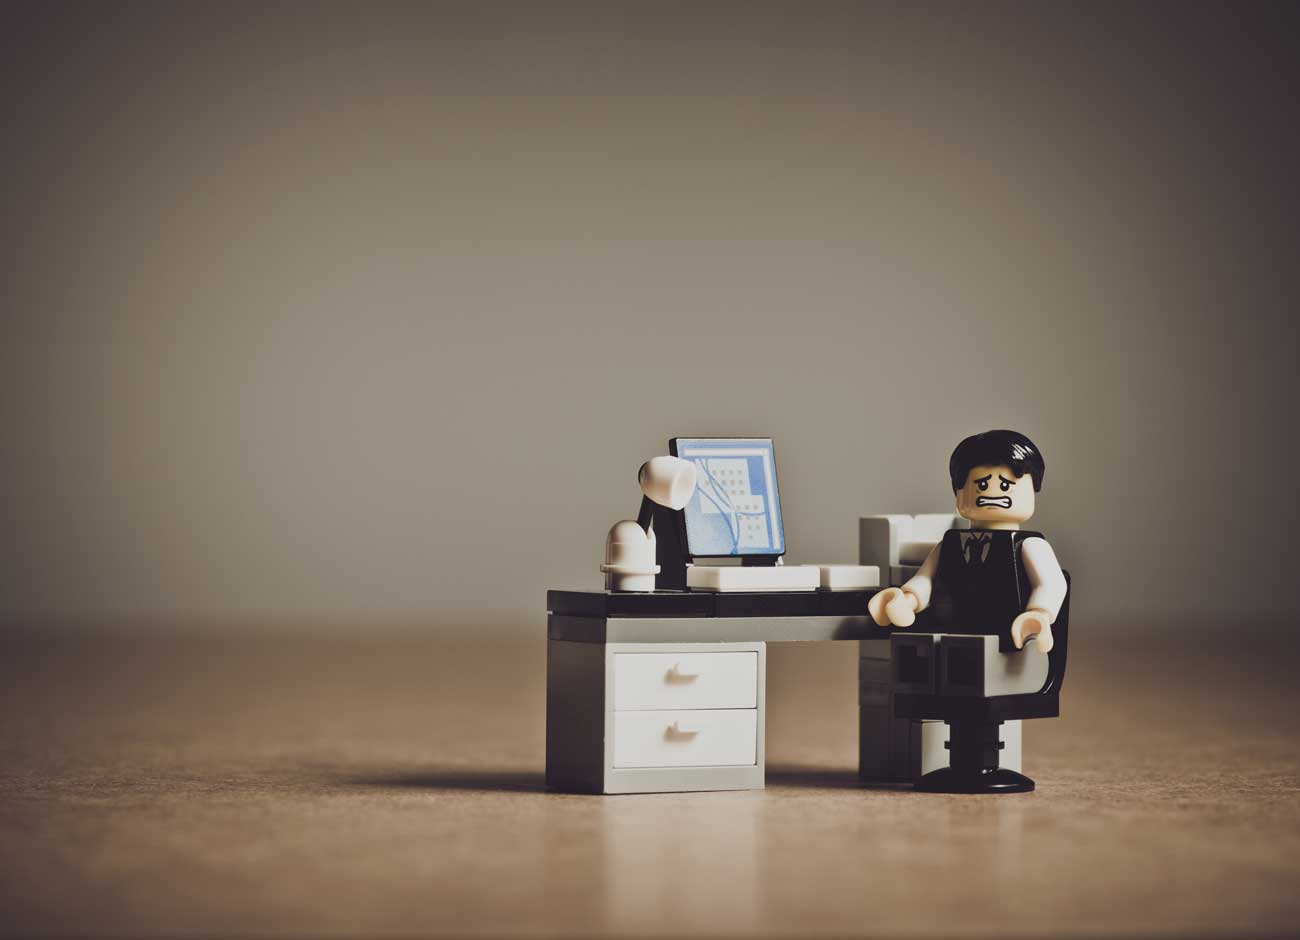 a photo illustration of a LEGO man sitting at a desk looking stressed